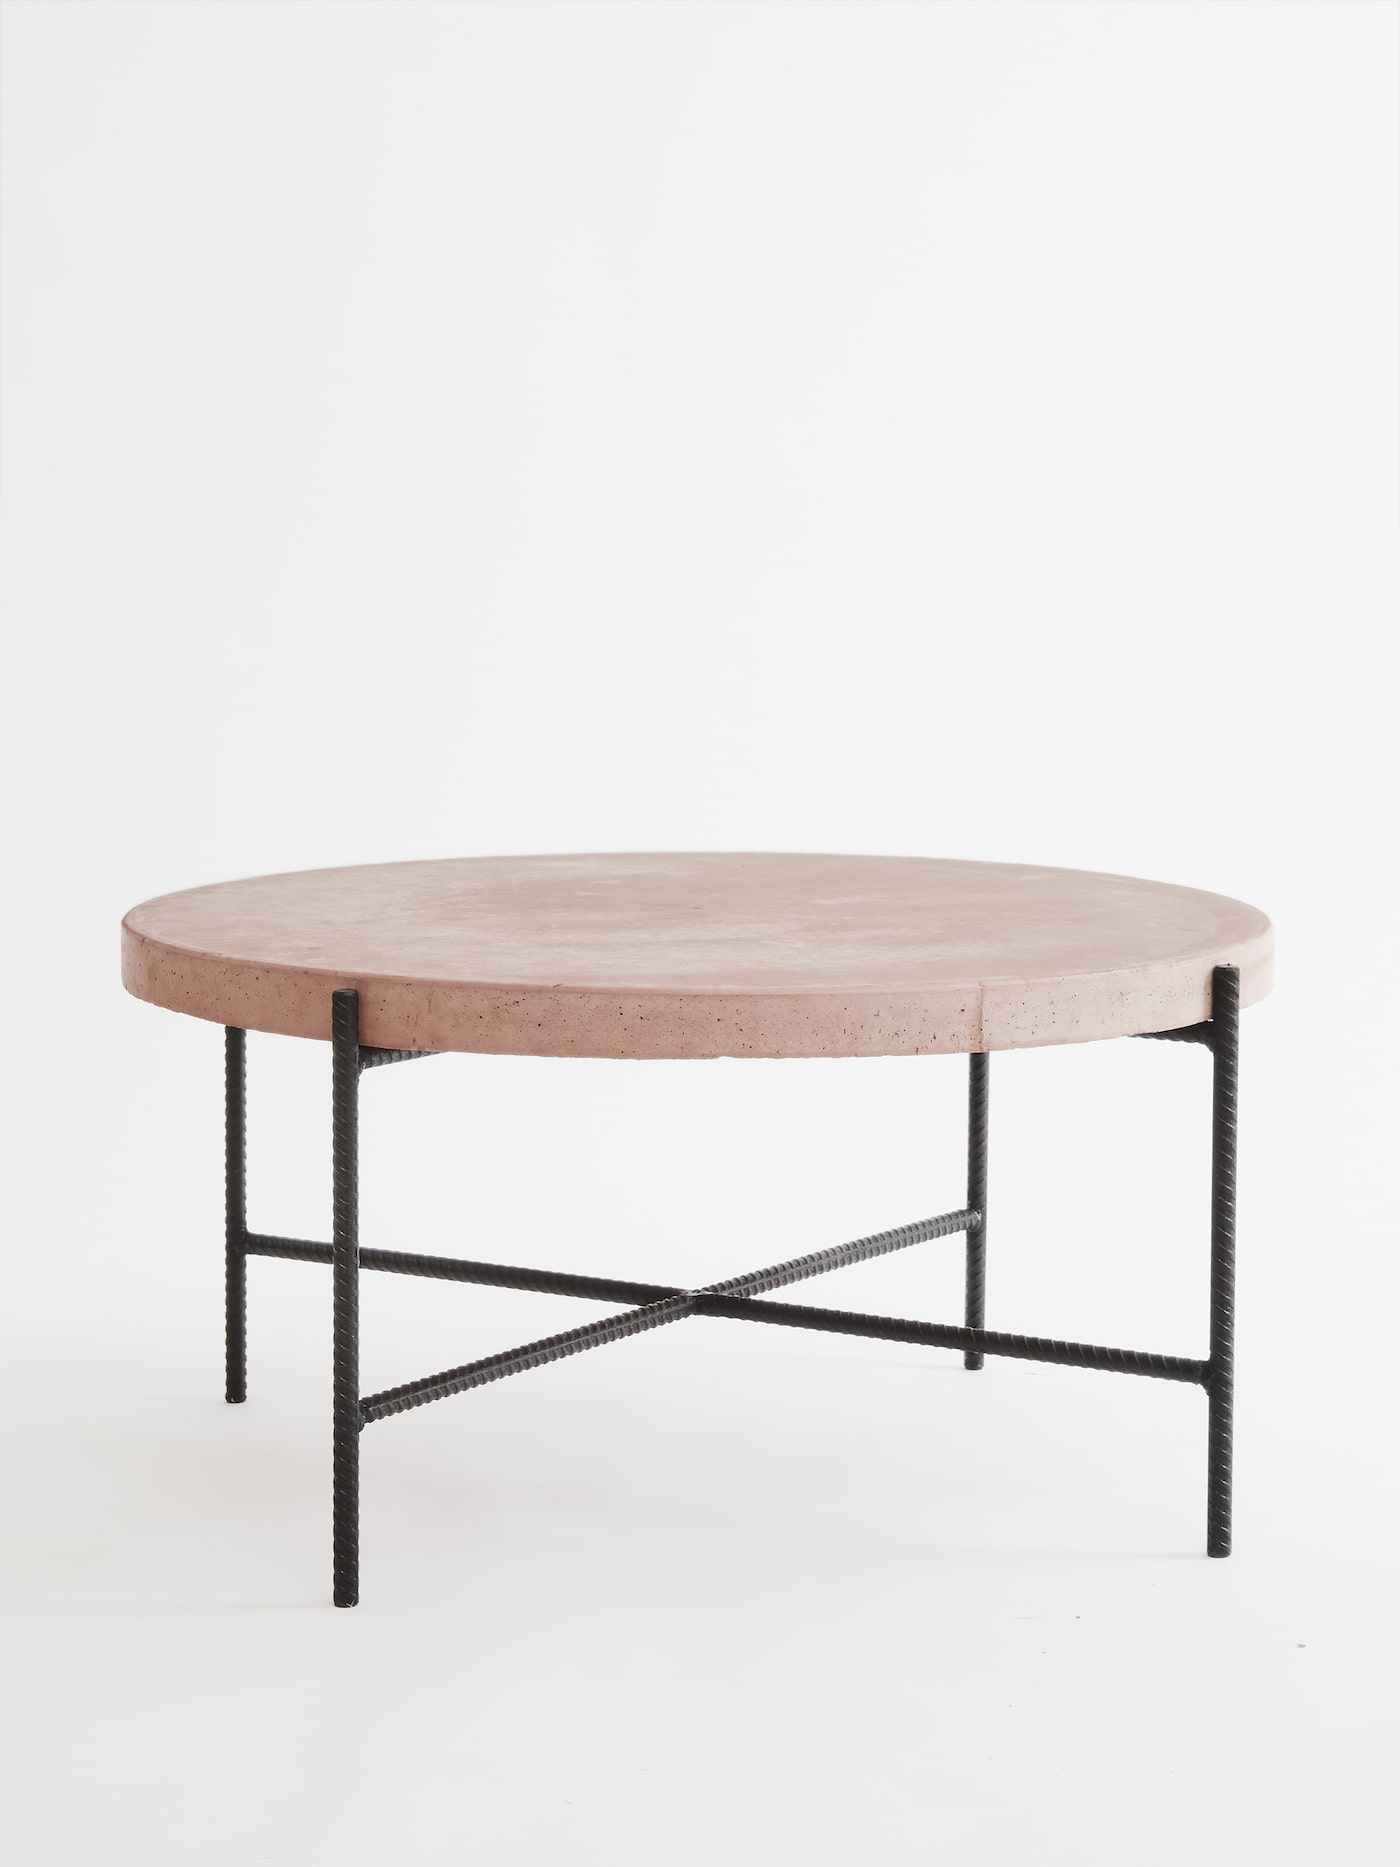 Over Pour coffee table in pink